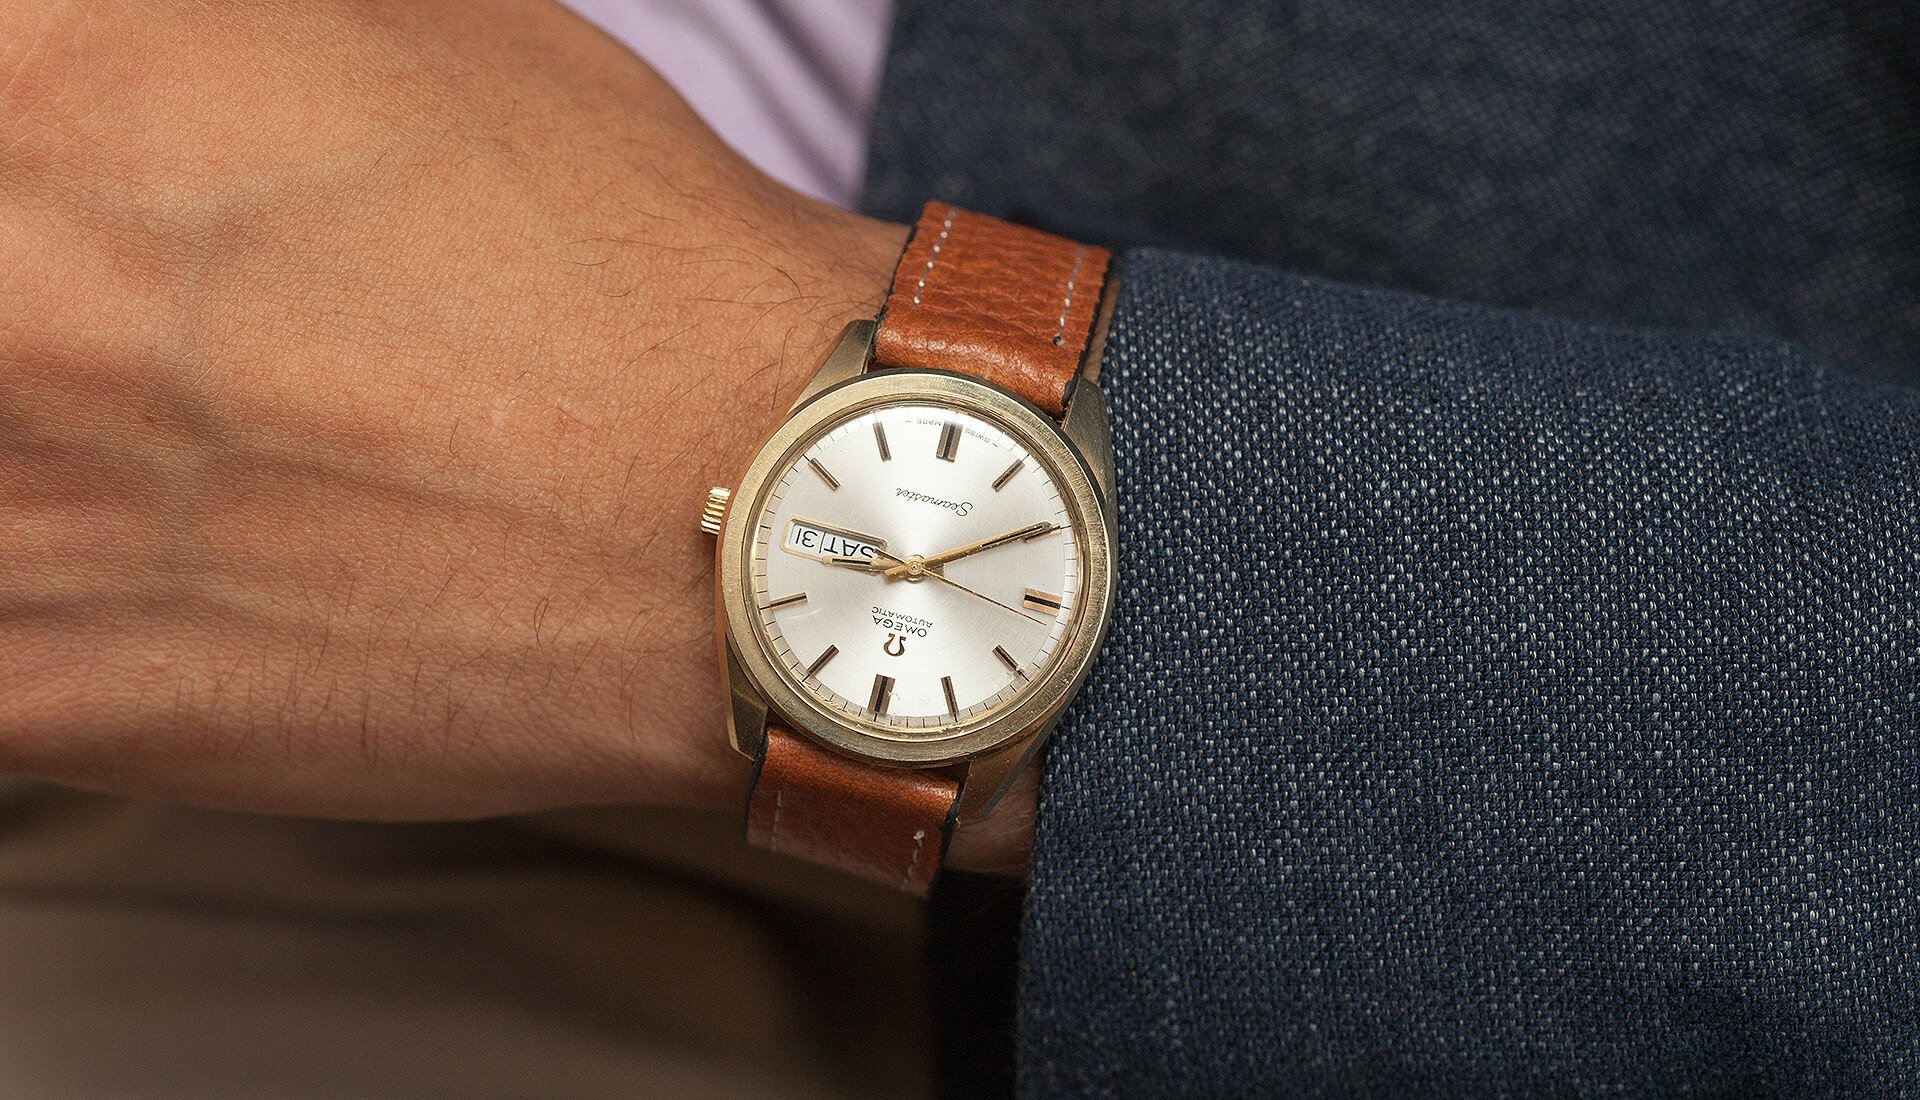 In The Metal: Picking the perfect vintage watch for your outfit